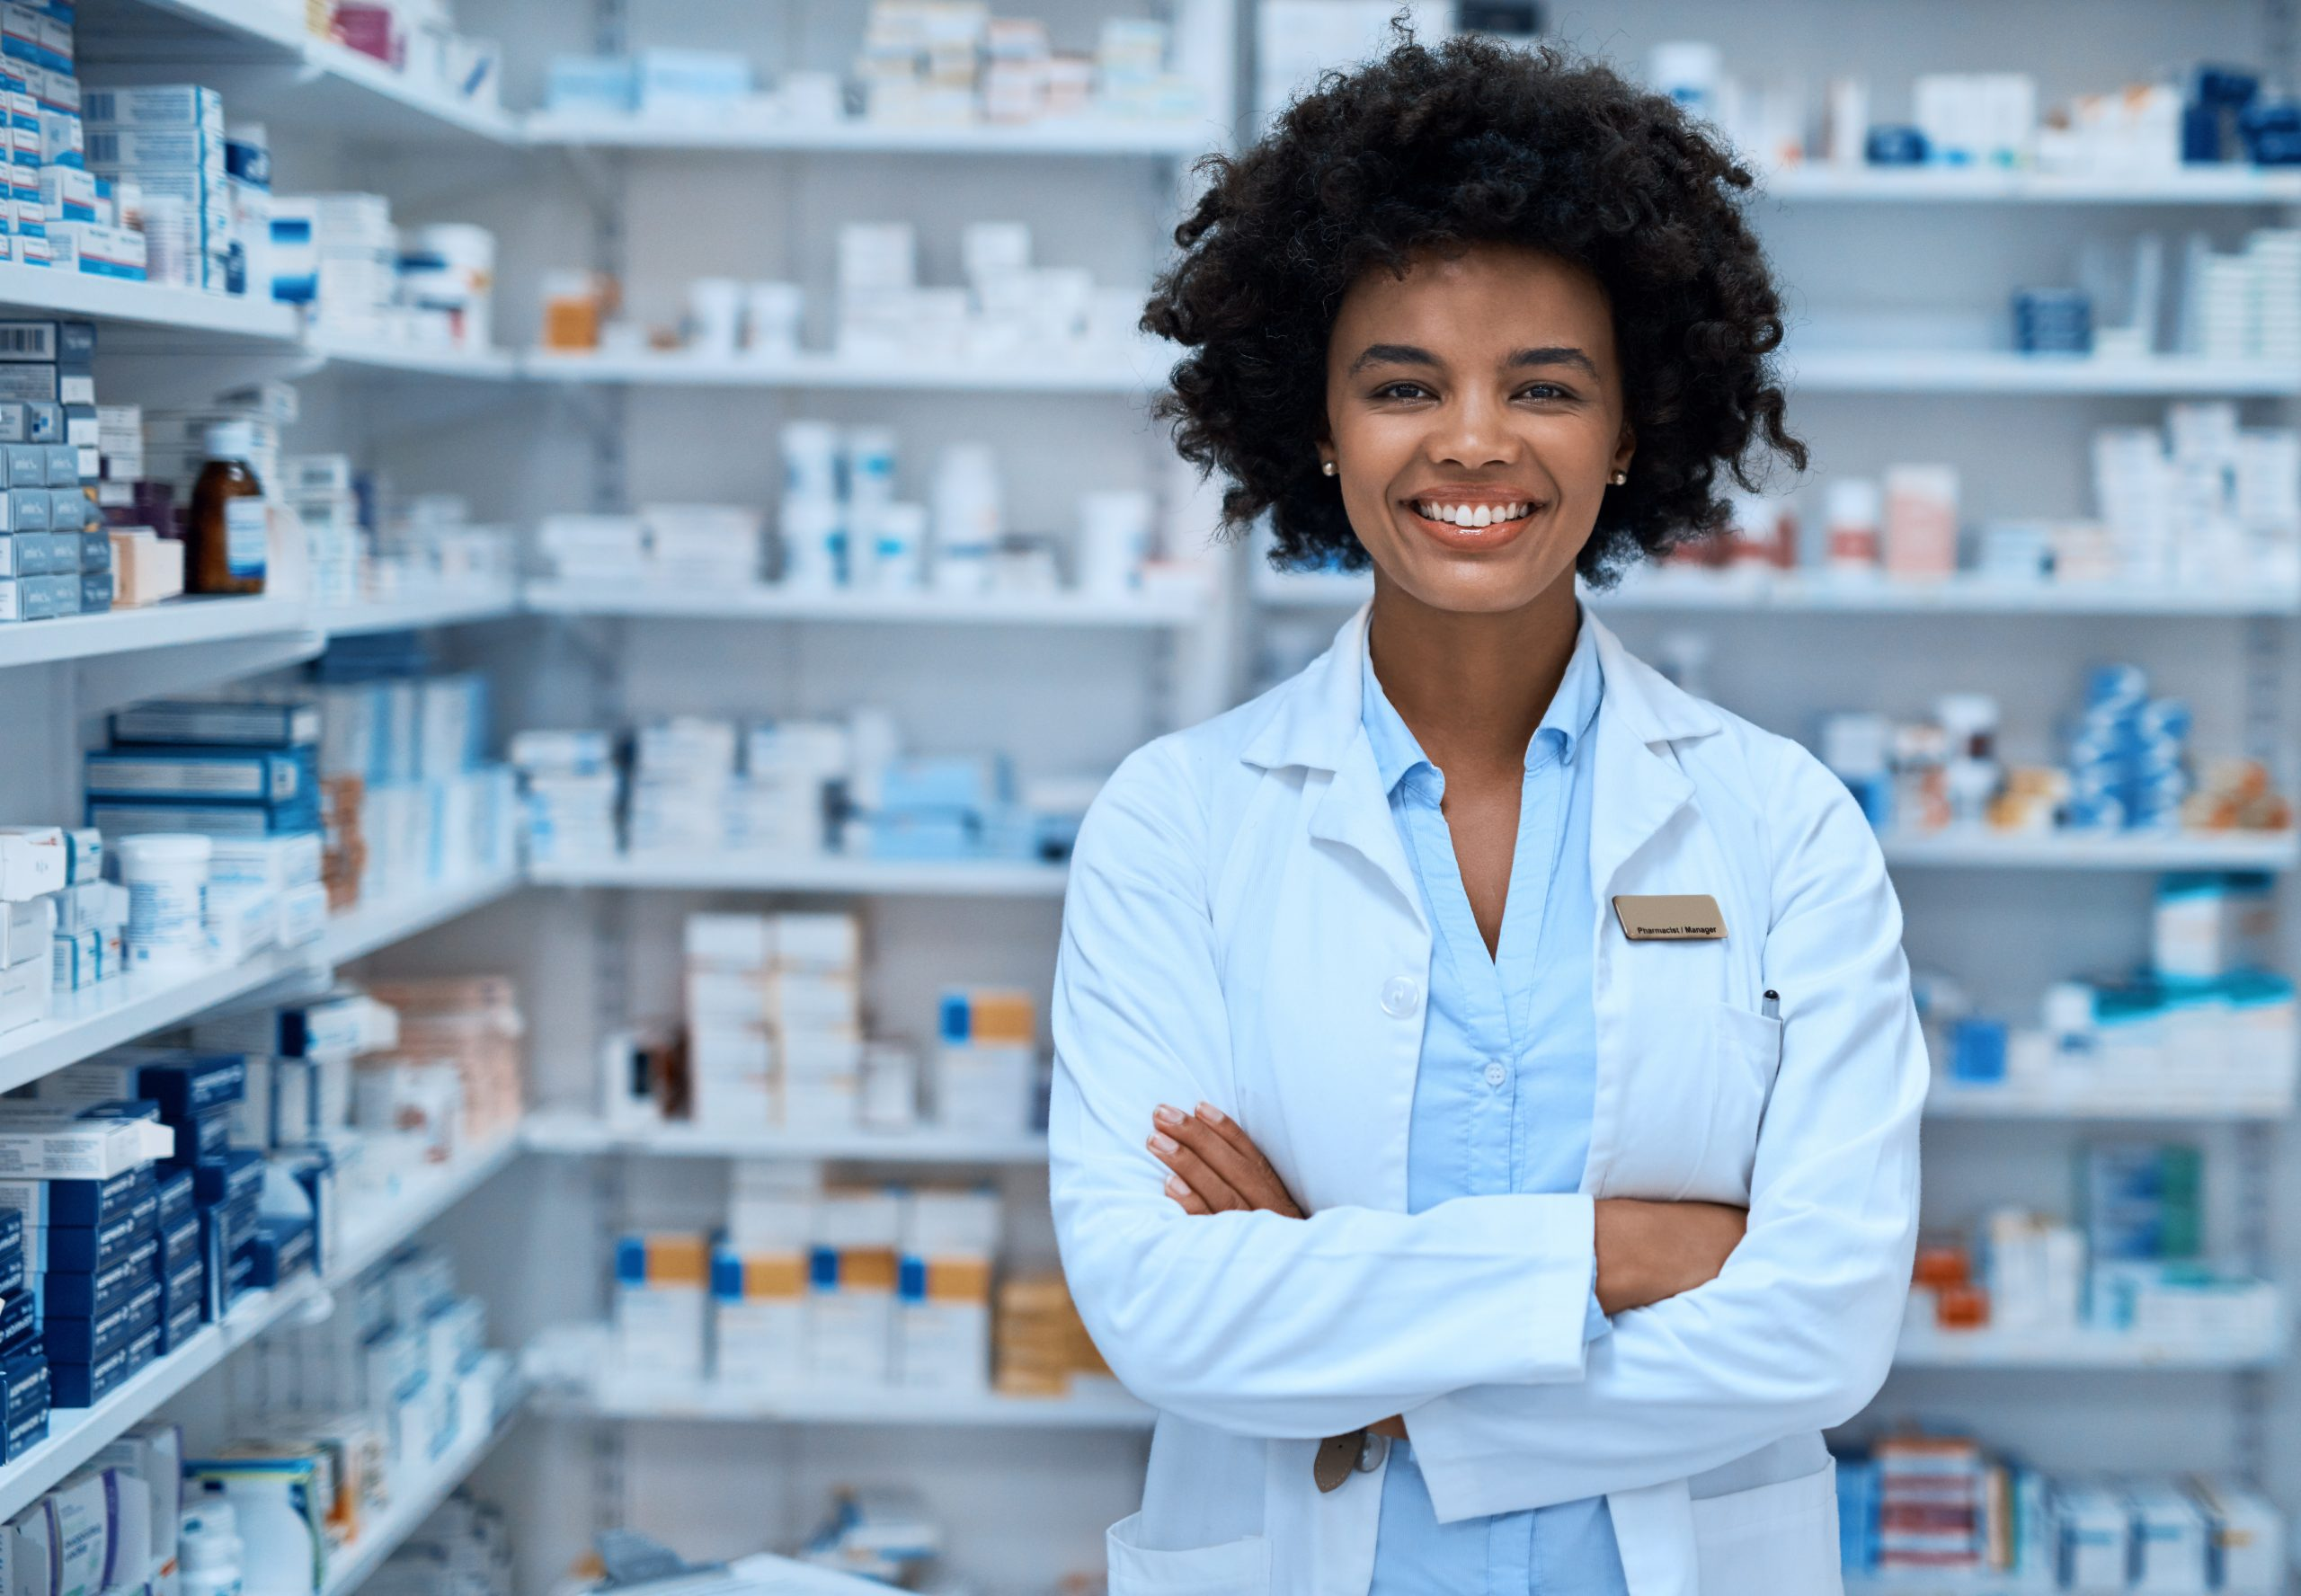 young woman in pharmacy